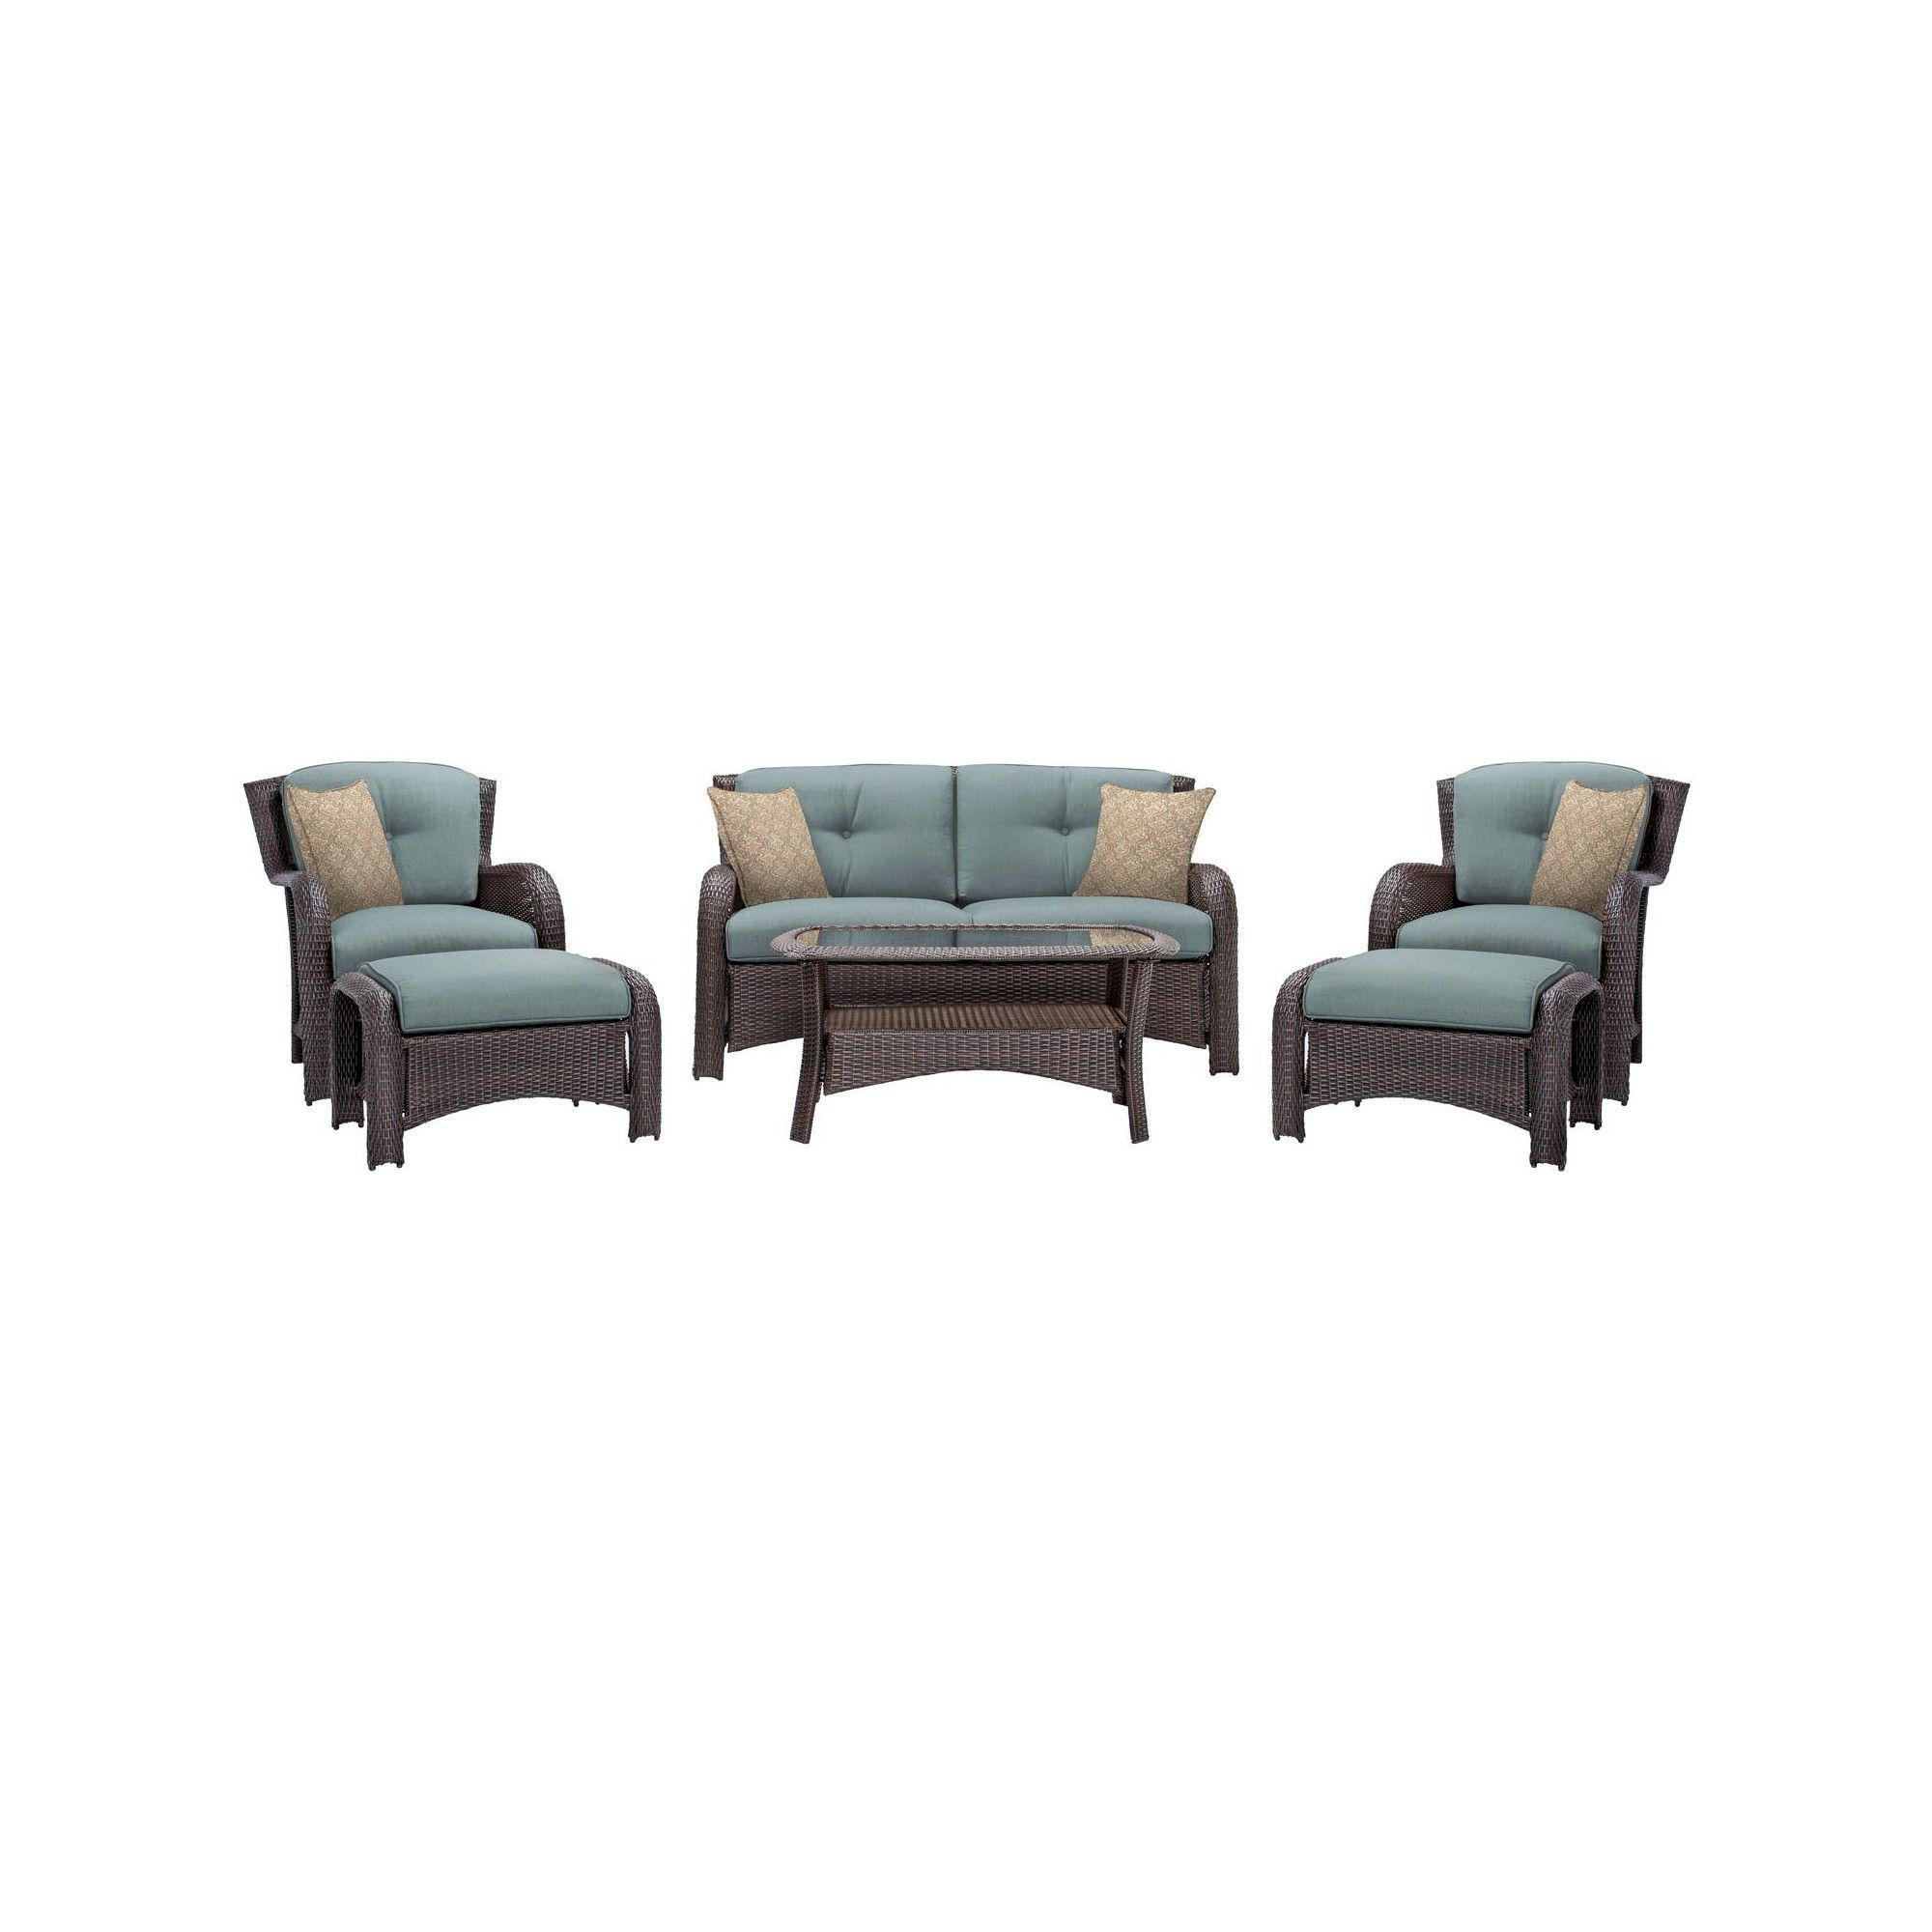 Pc patio seating set hanover blue products